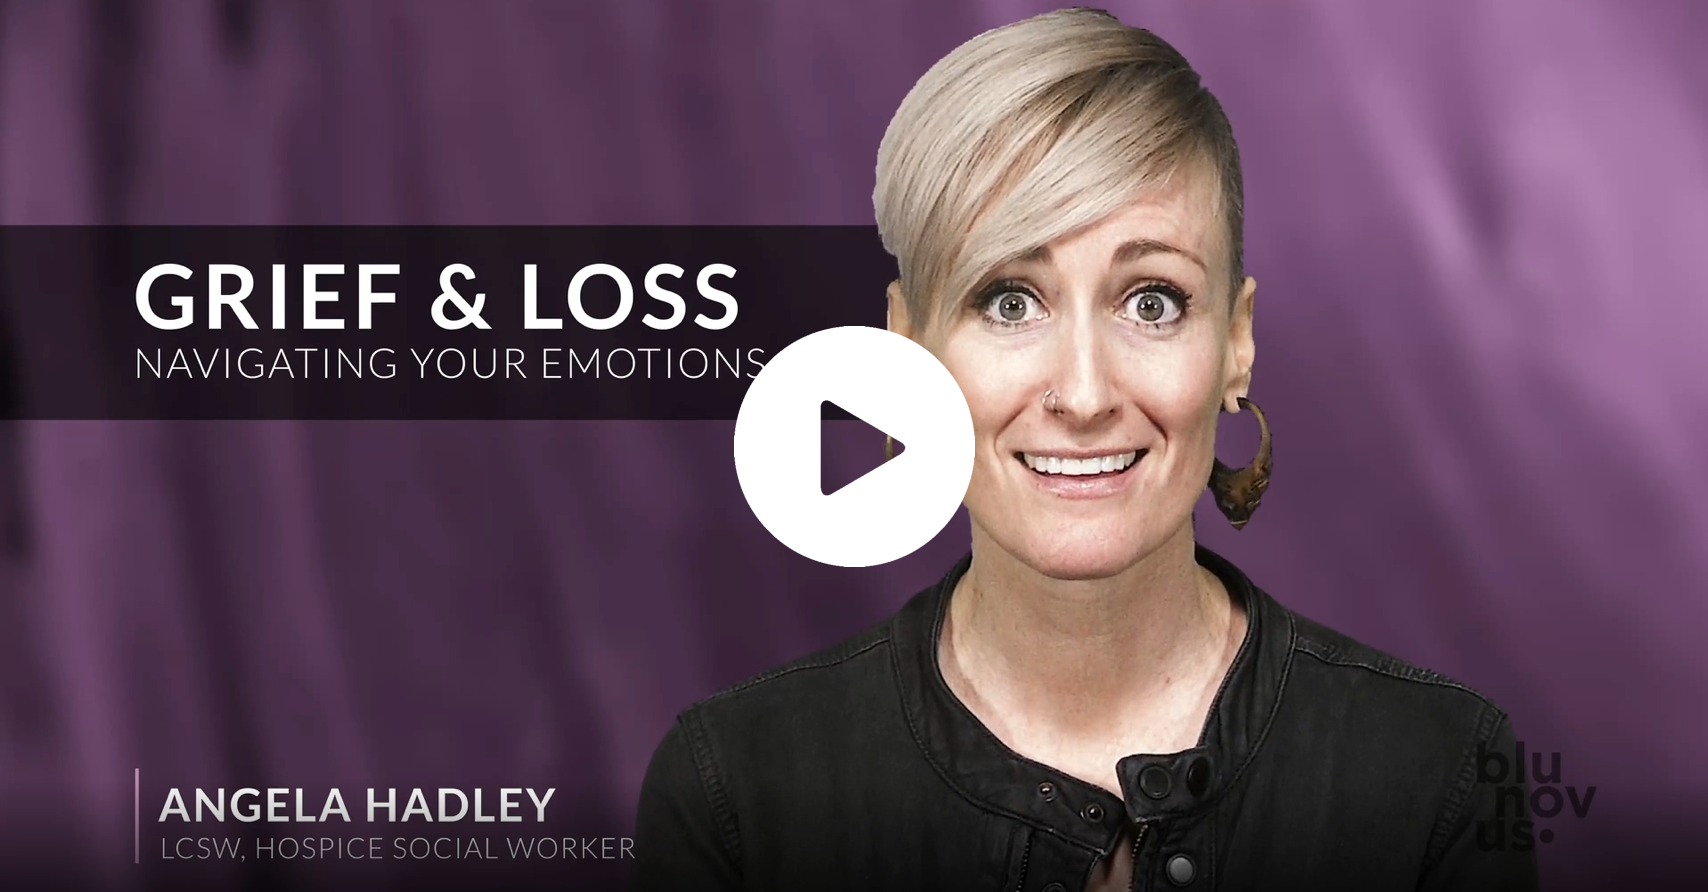 Angela Hadley Grief and Loss Course image